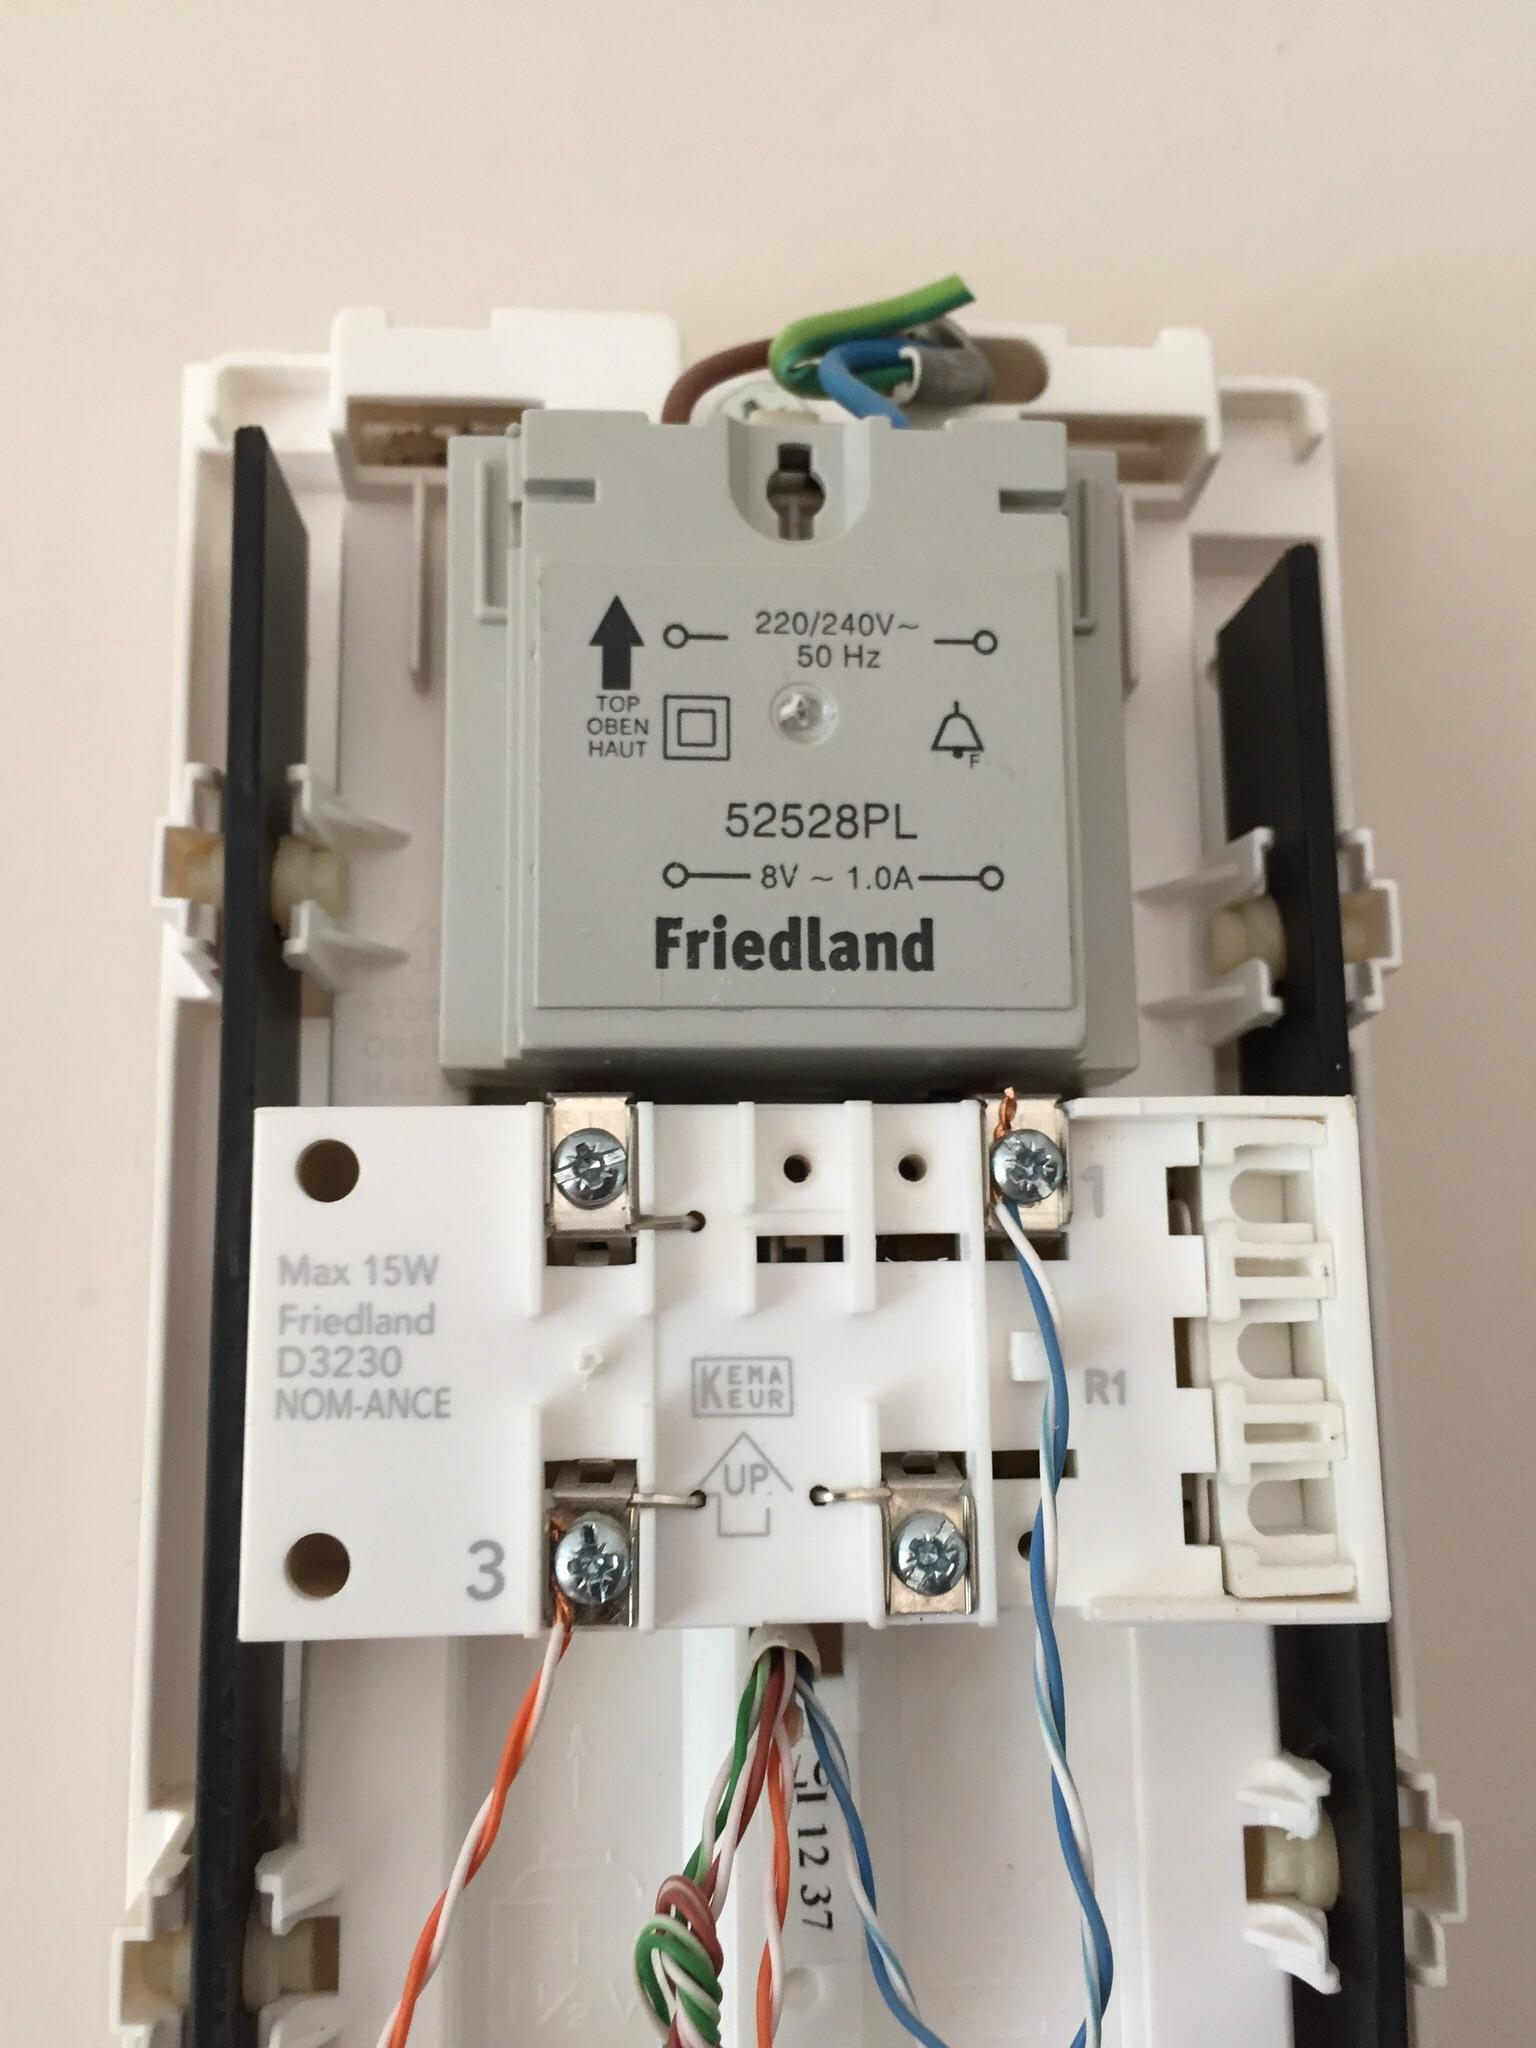 Installing Nest Hello Uk - What Are My Options With The Following - Nest Doorbell Uk Wiring Diagram